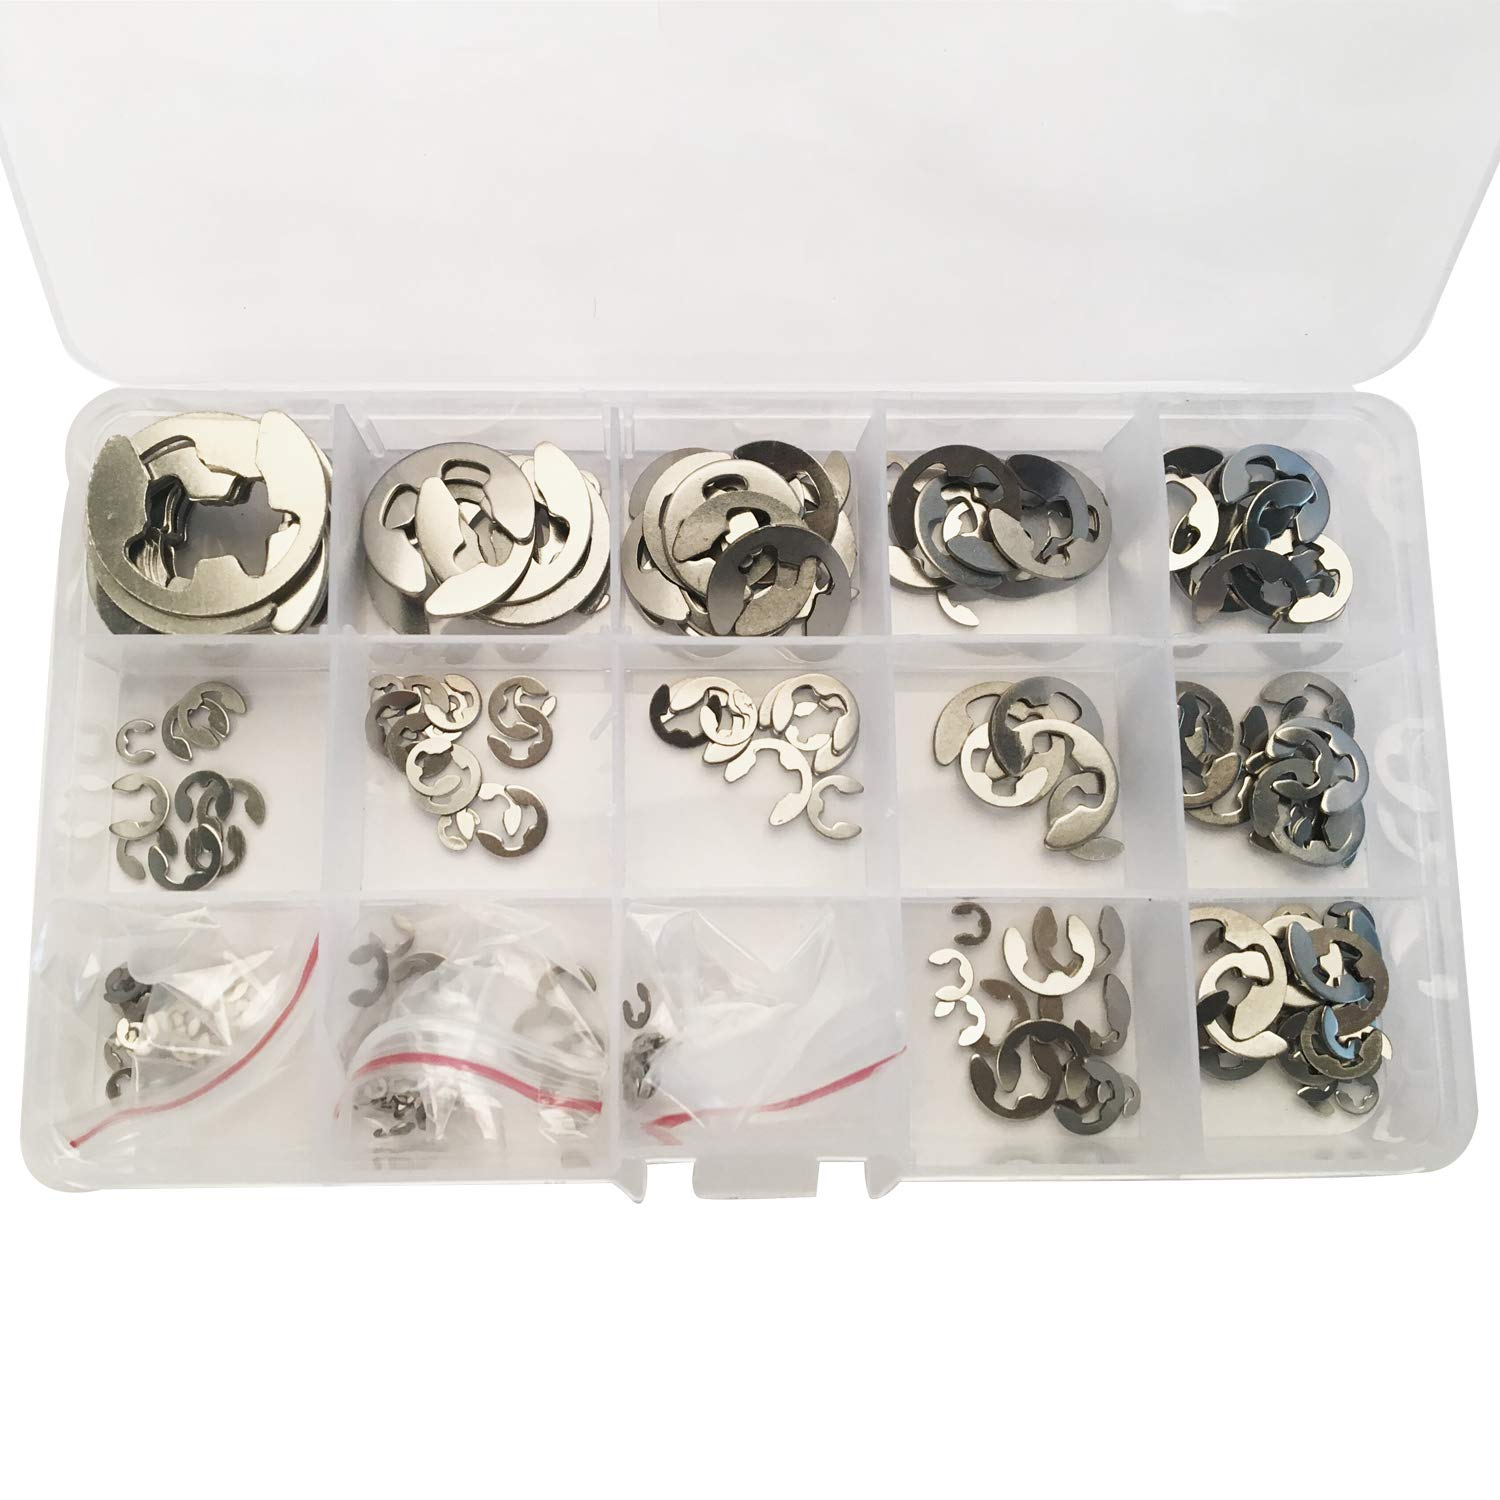 Hotetey 225Pcs Stainless Steel E-Clip External Retaining Ring Assortment Set, 15 Sizes